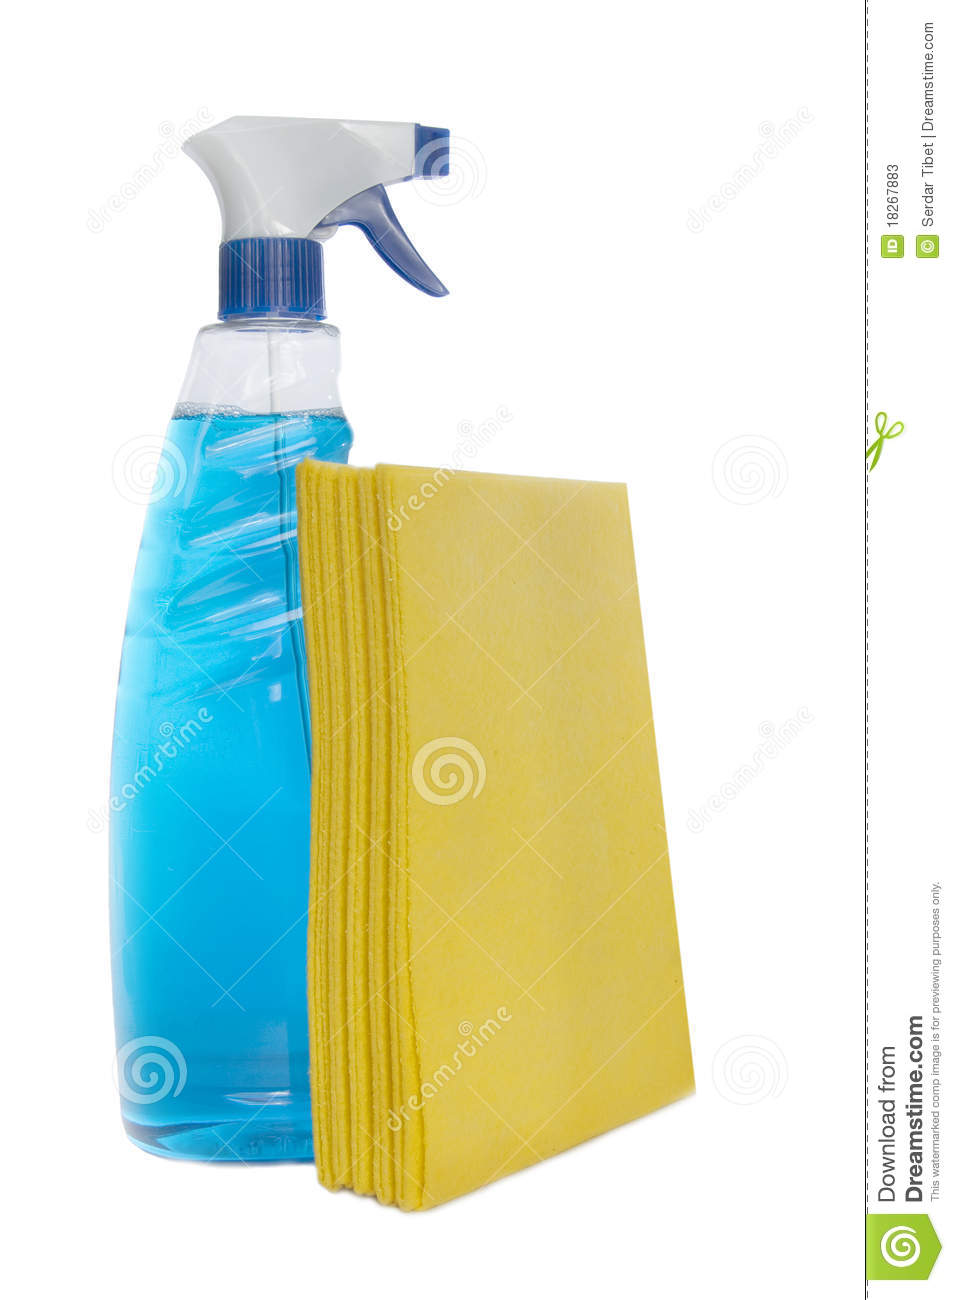 Glass cleaning kit stock photos image 18267883 for Glass cleaning towels